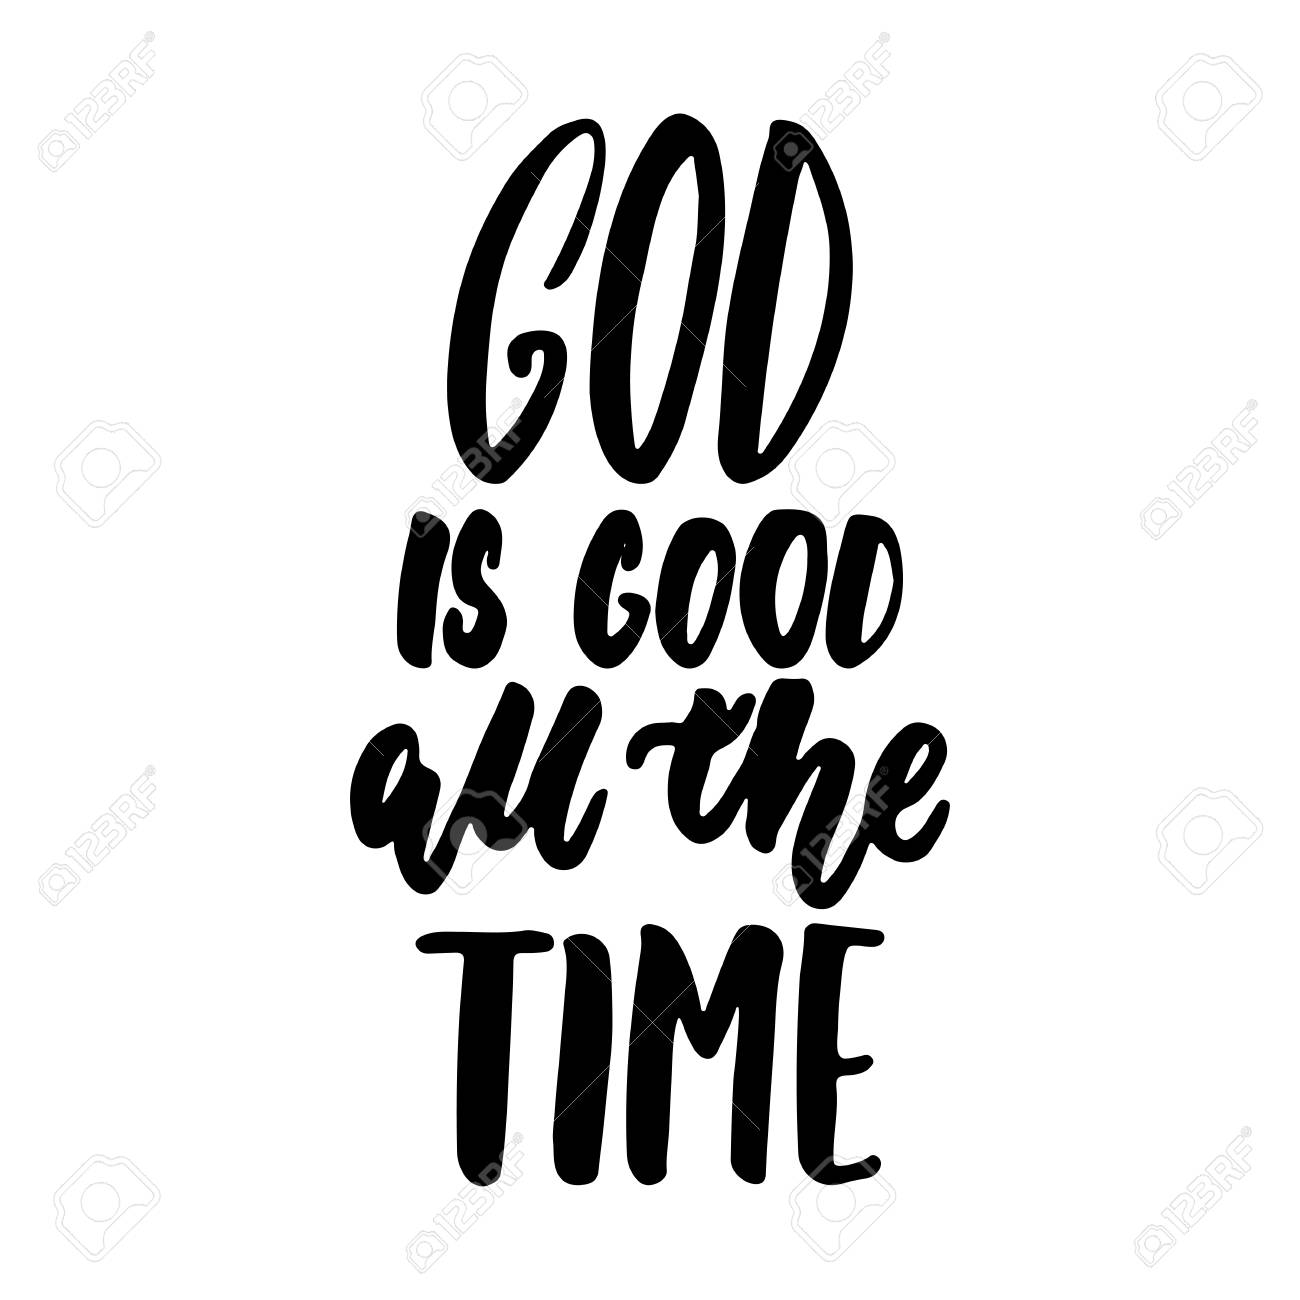 God Is Good All The Time Clipart.